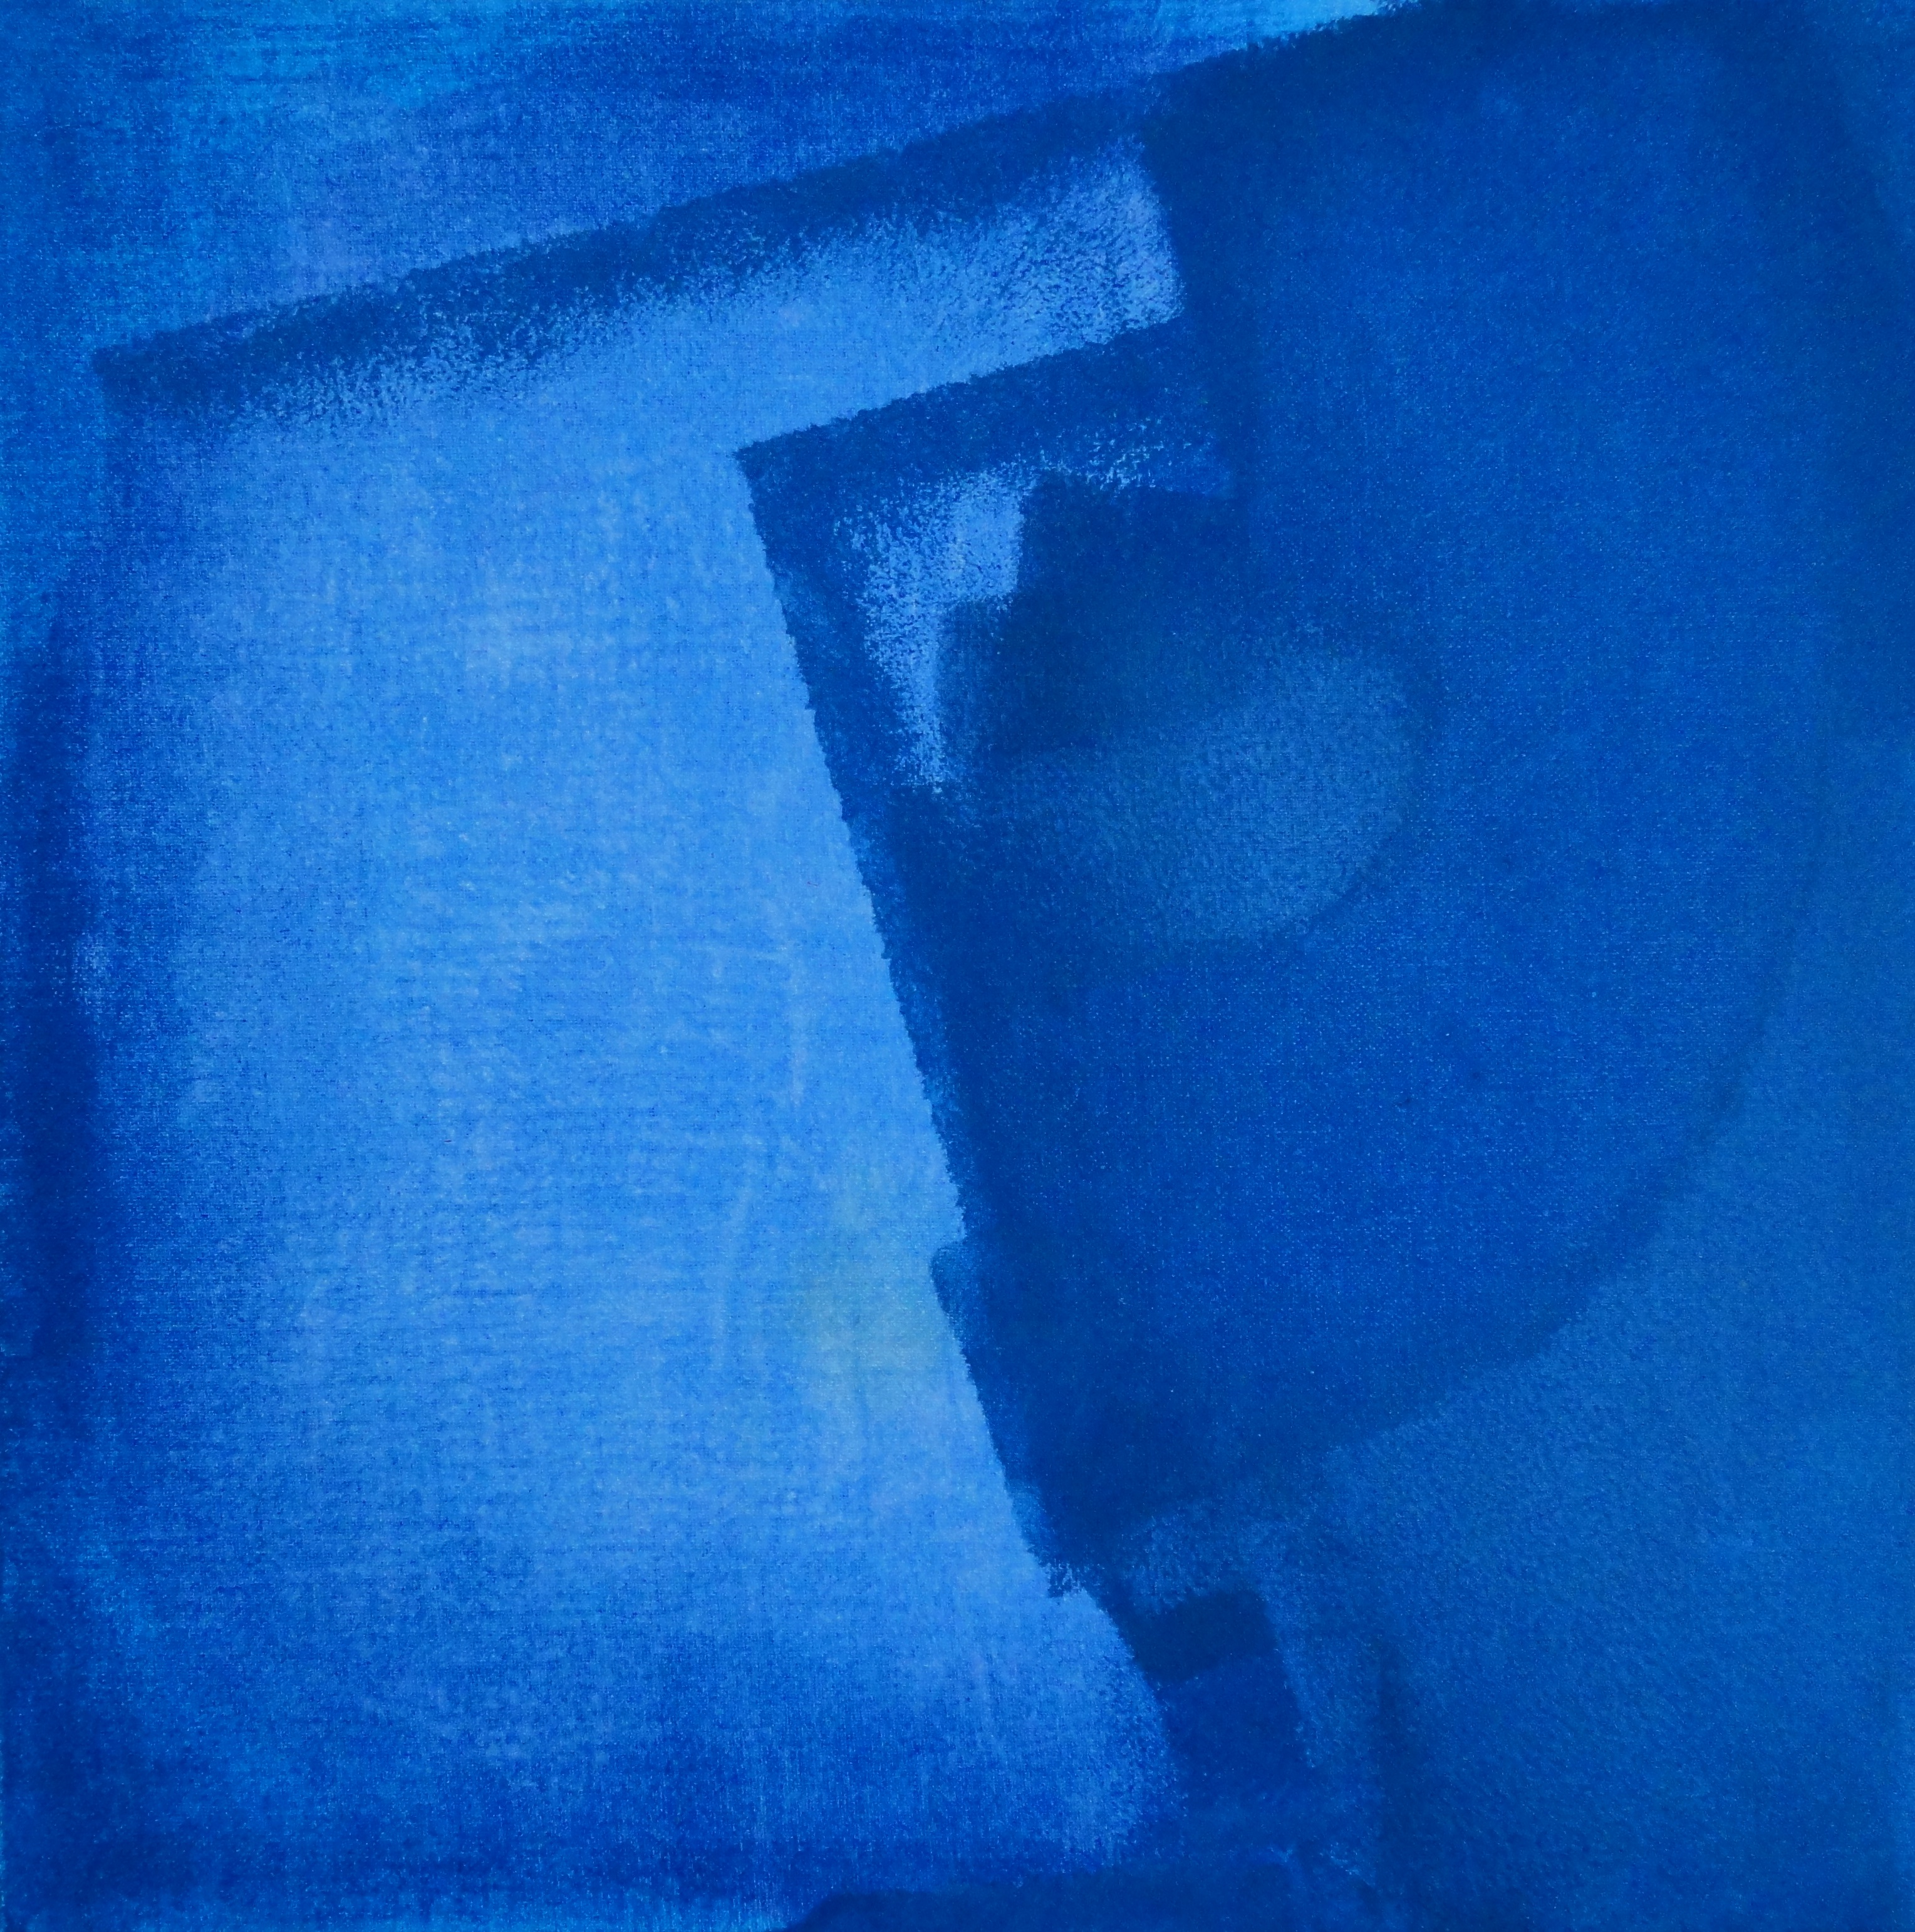 Uros Paternu 1999 Untitled 07 artwork by Uros Paternu - art listed for sale on Artplode